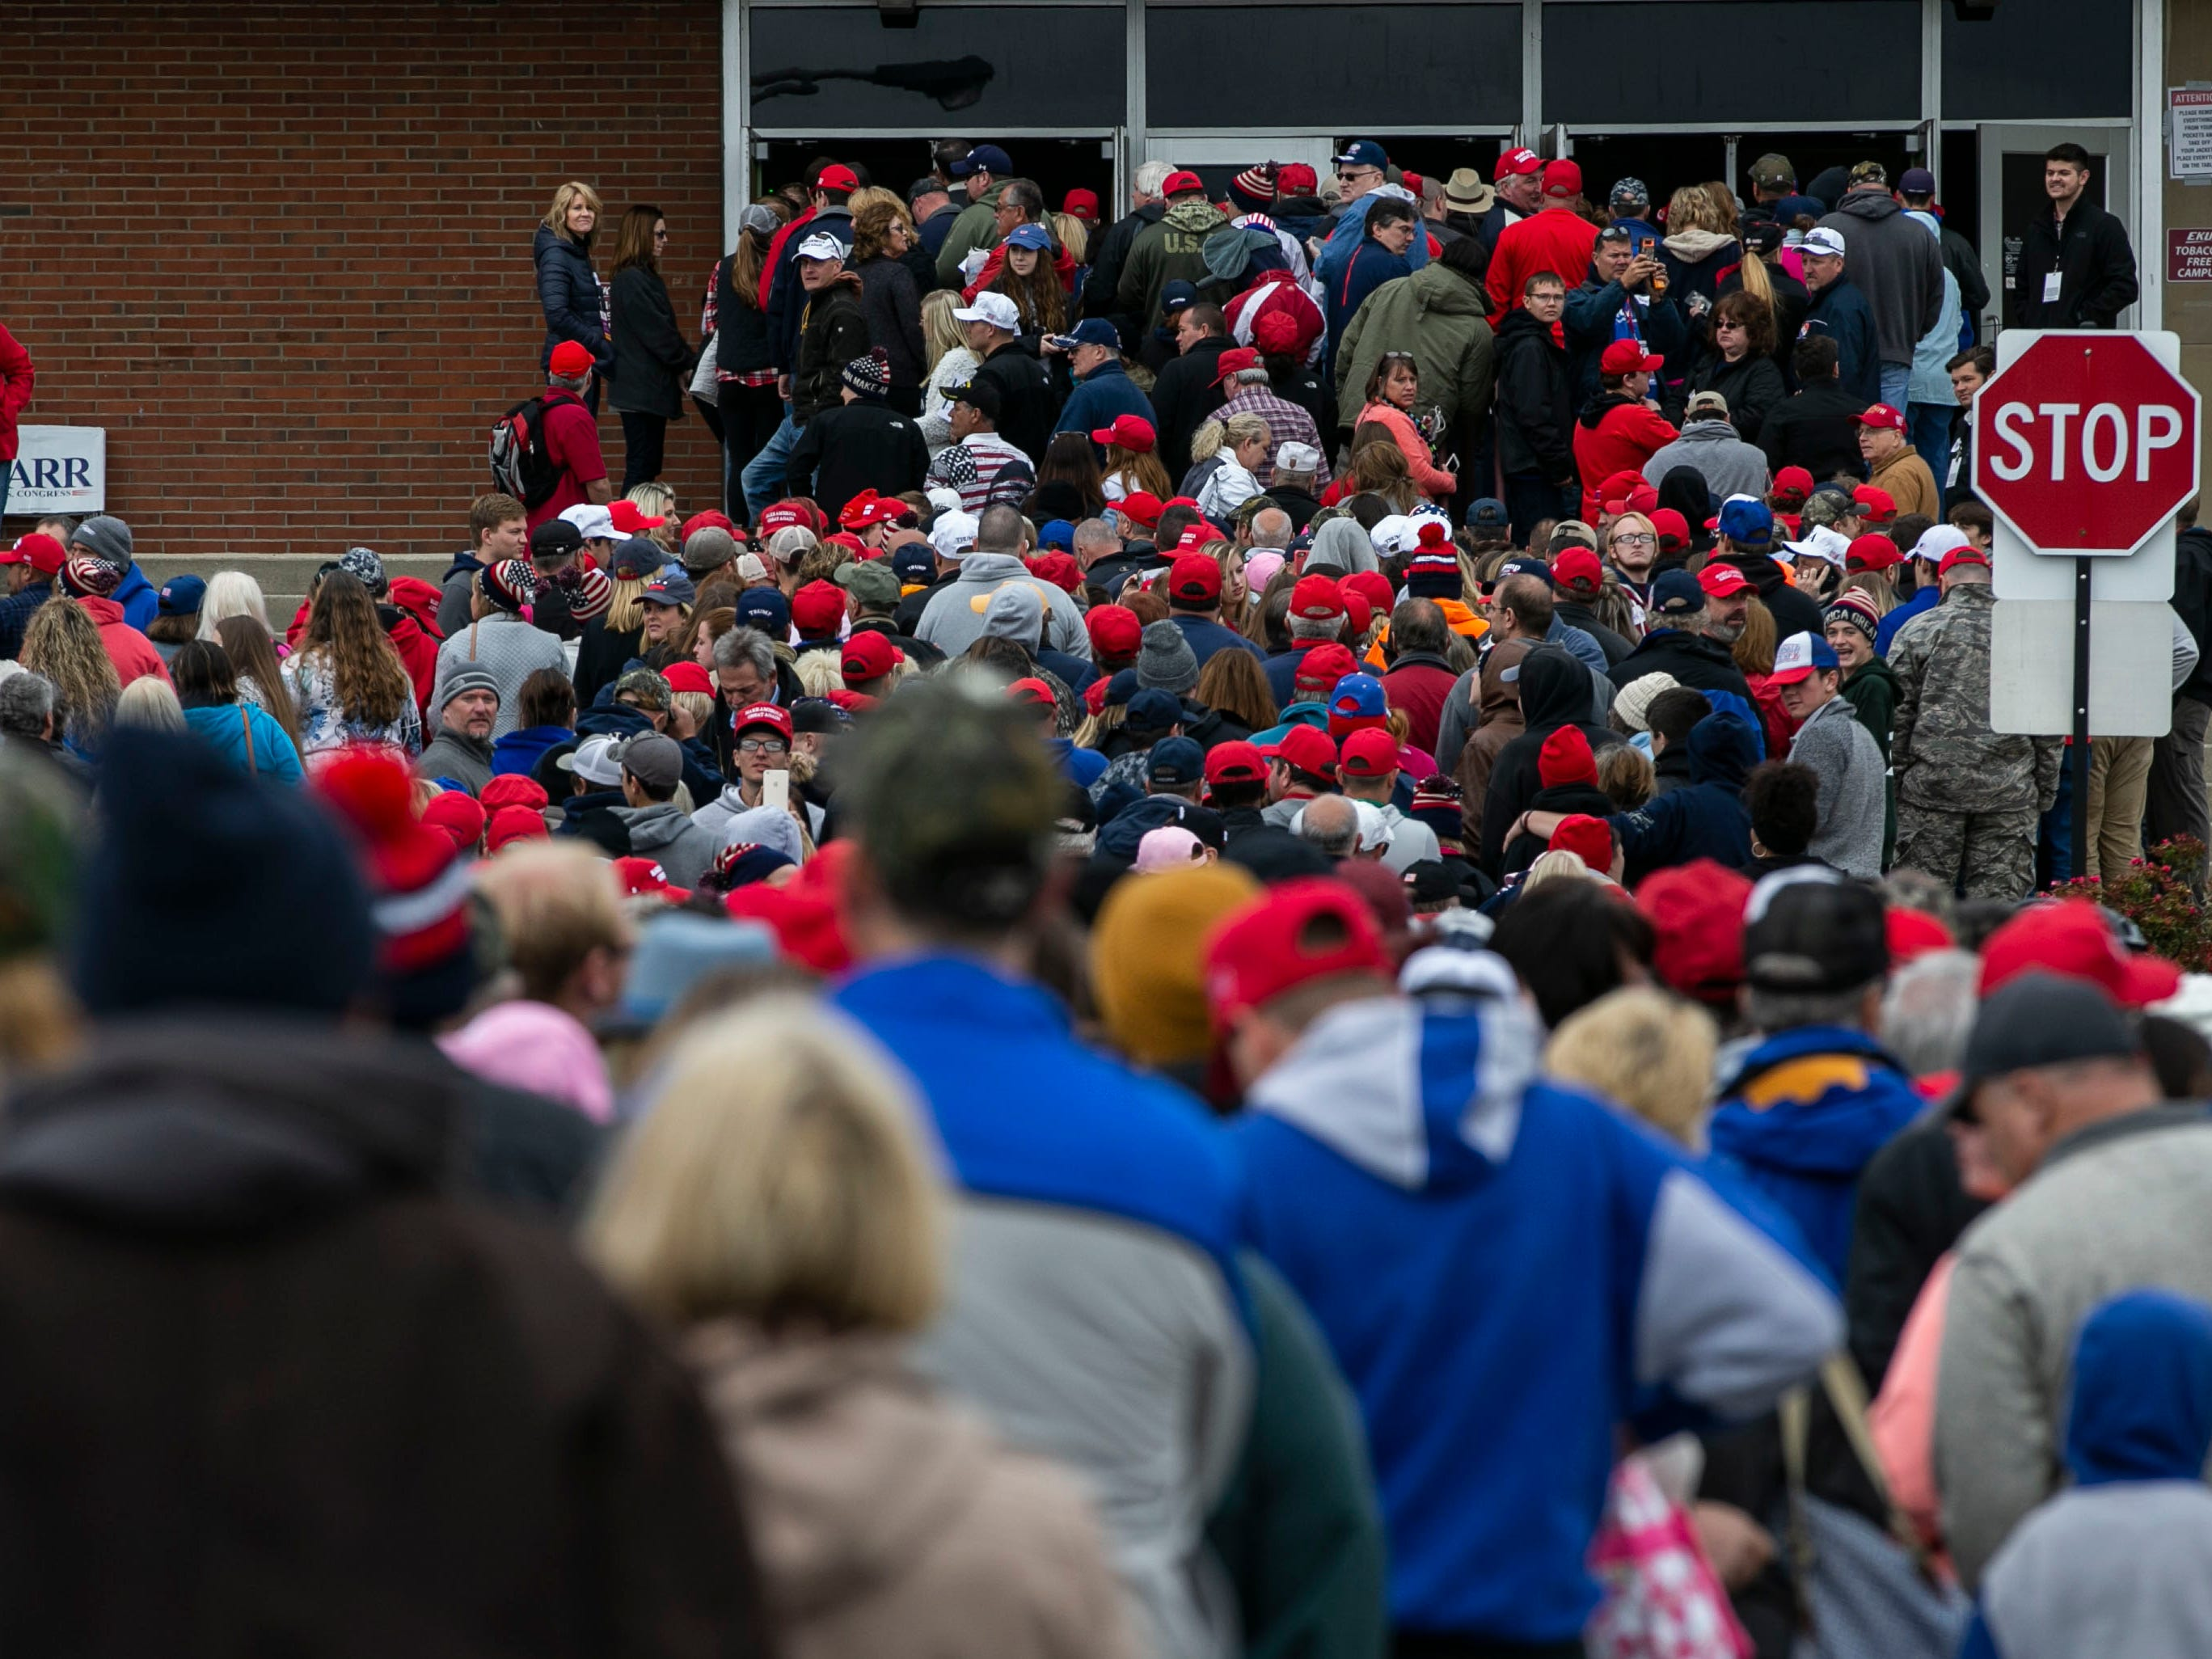 People crowded the front of Alumni Coliseum Saturday afternoon in anticipation for President Donald Trump's speech.